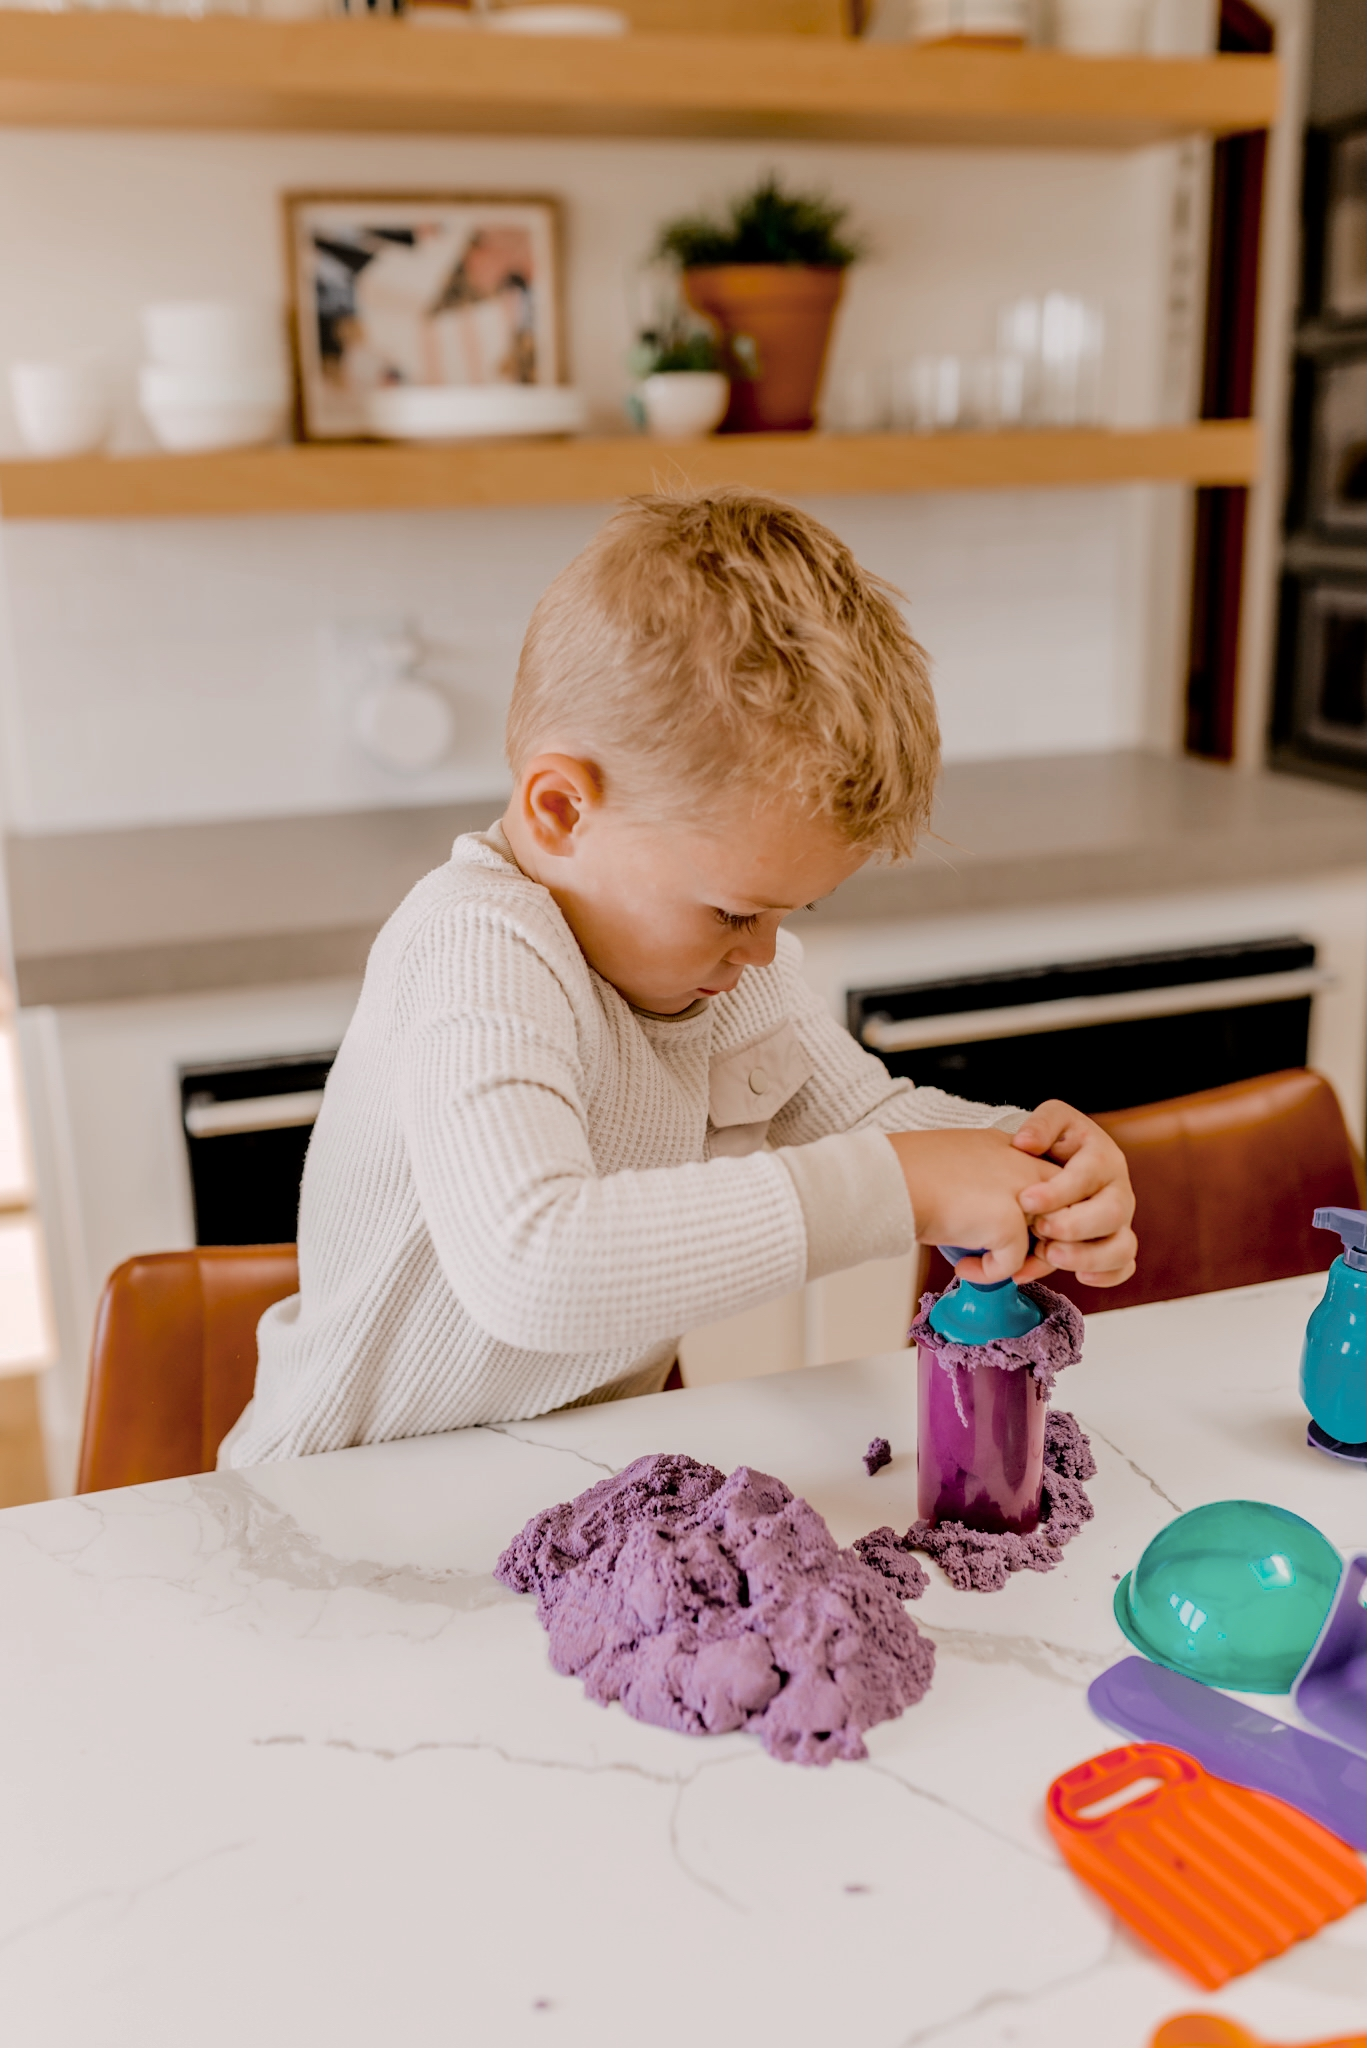 24 PRESCHOOLER GIFTS YOUR 3 TO 5 YEAR OLDS WILL LOVE featured by top San Diego lifestyle blogger, Navy Grace | Preschooler Gifts by popular San Diego lifestyle blog, Navy Grace: image of a young boy playing with kinetic sand.